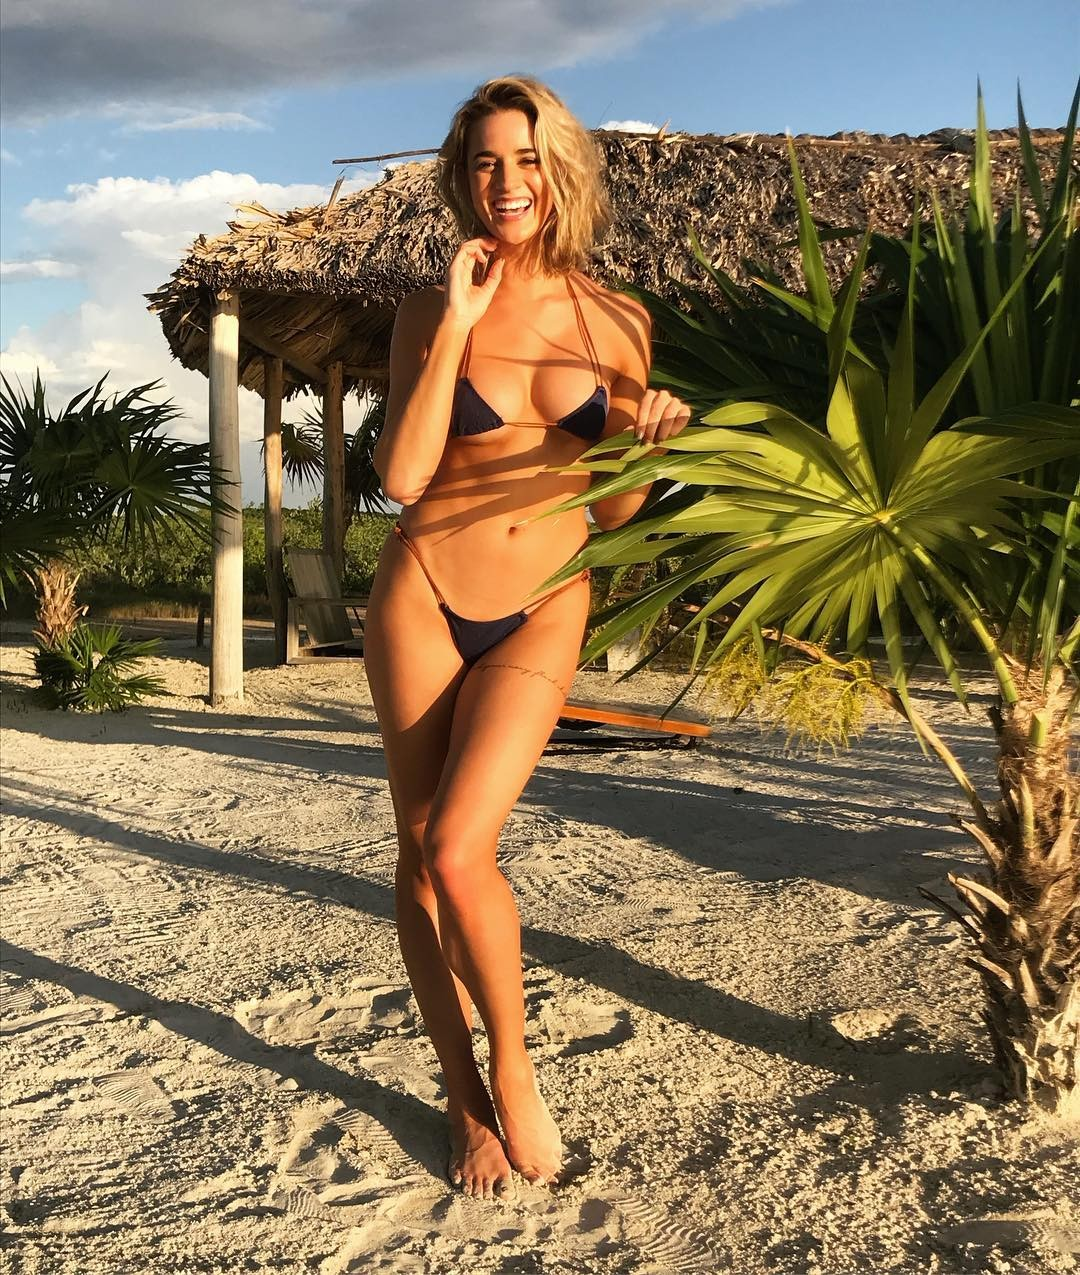 Allie Ayers Nude allie ayers - page 3 pictures, naked, oops, topless, bikini